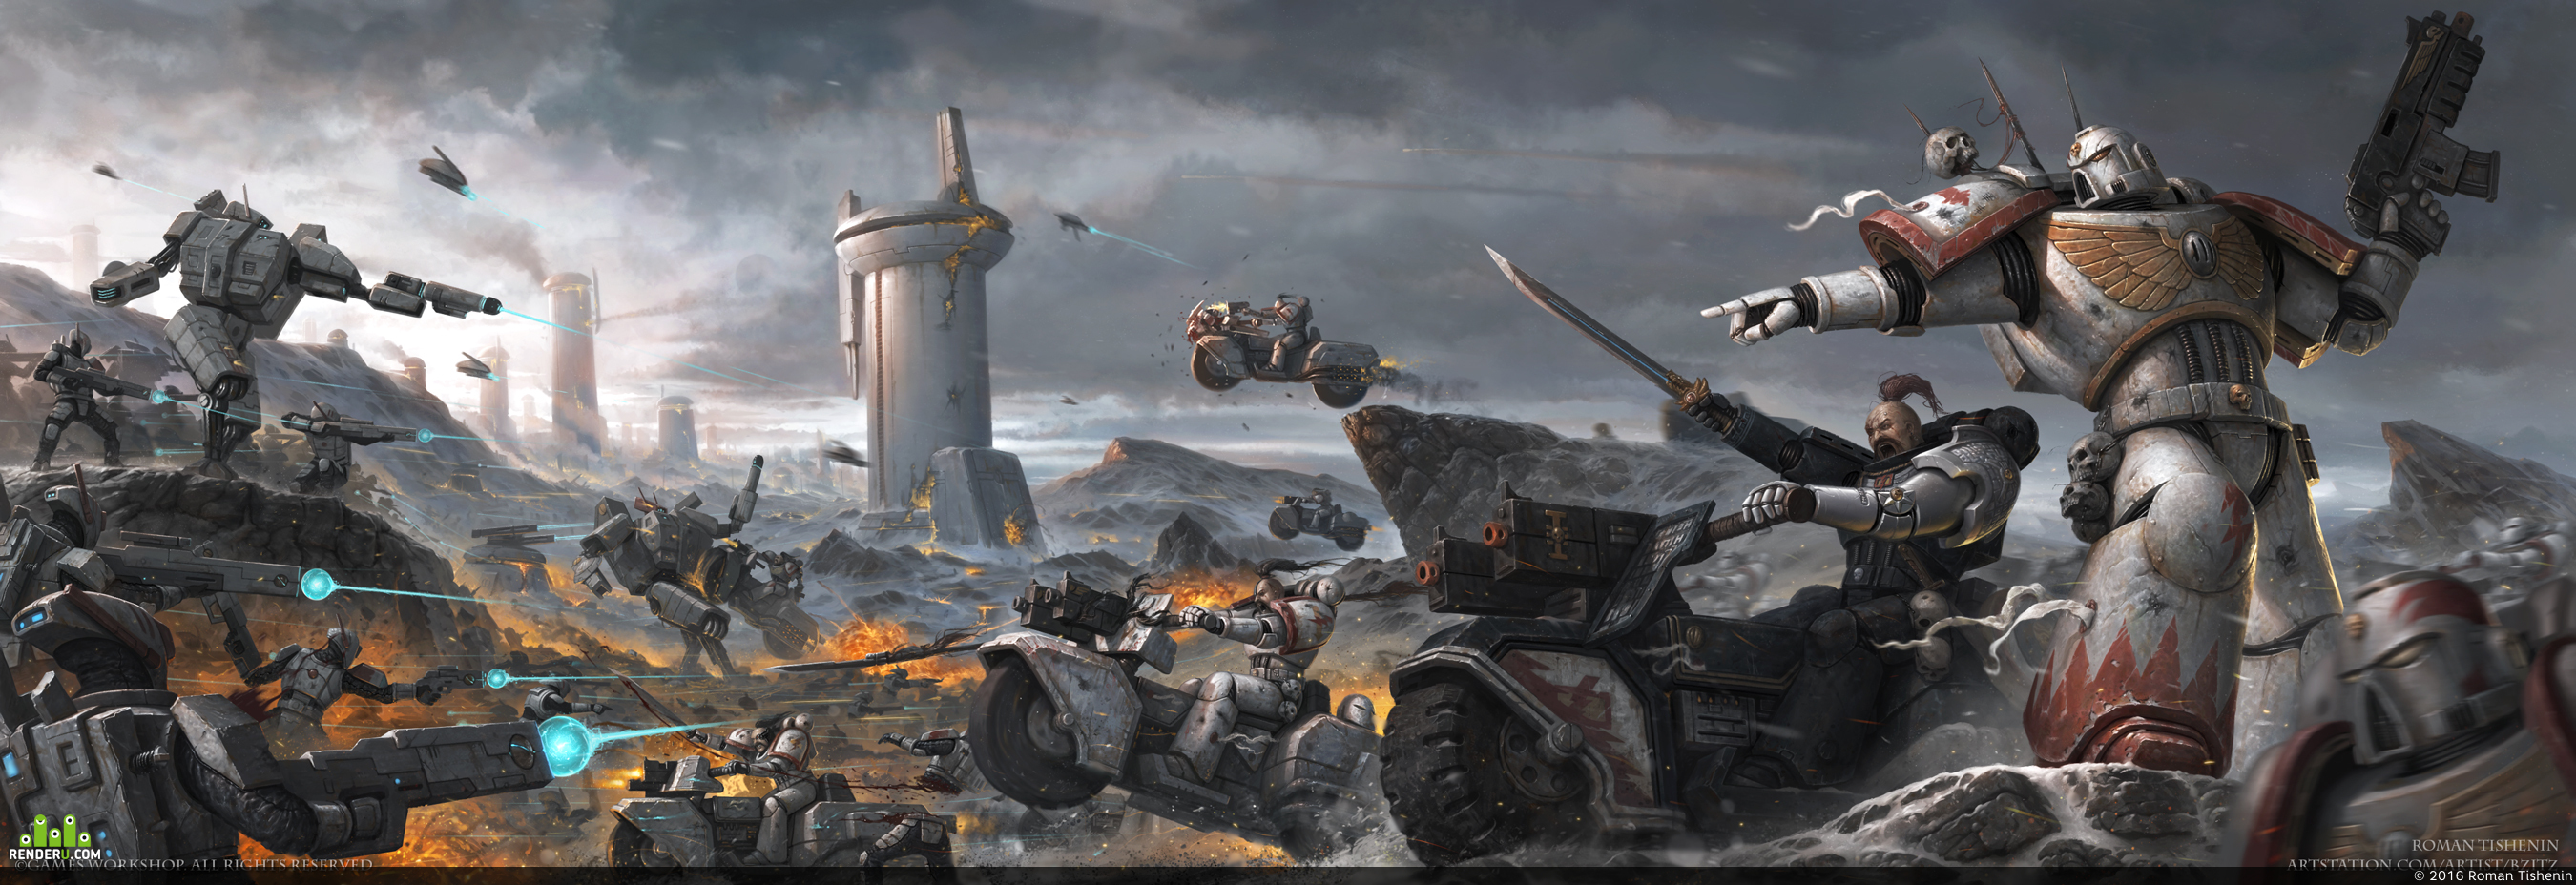 preview Warhammer 40000: Storm of Damocles